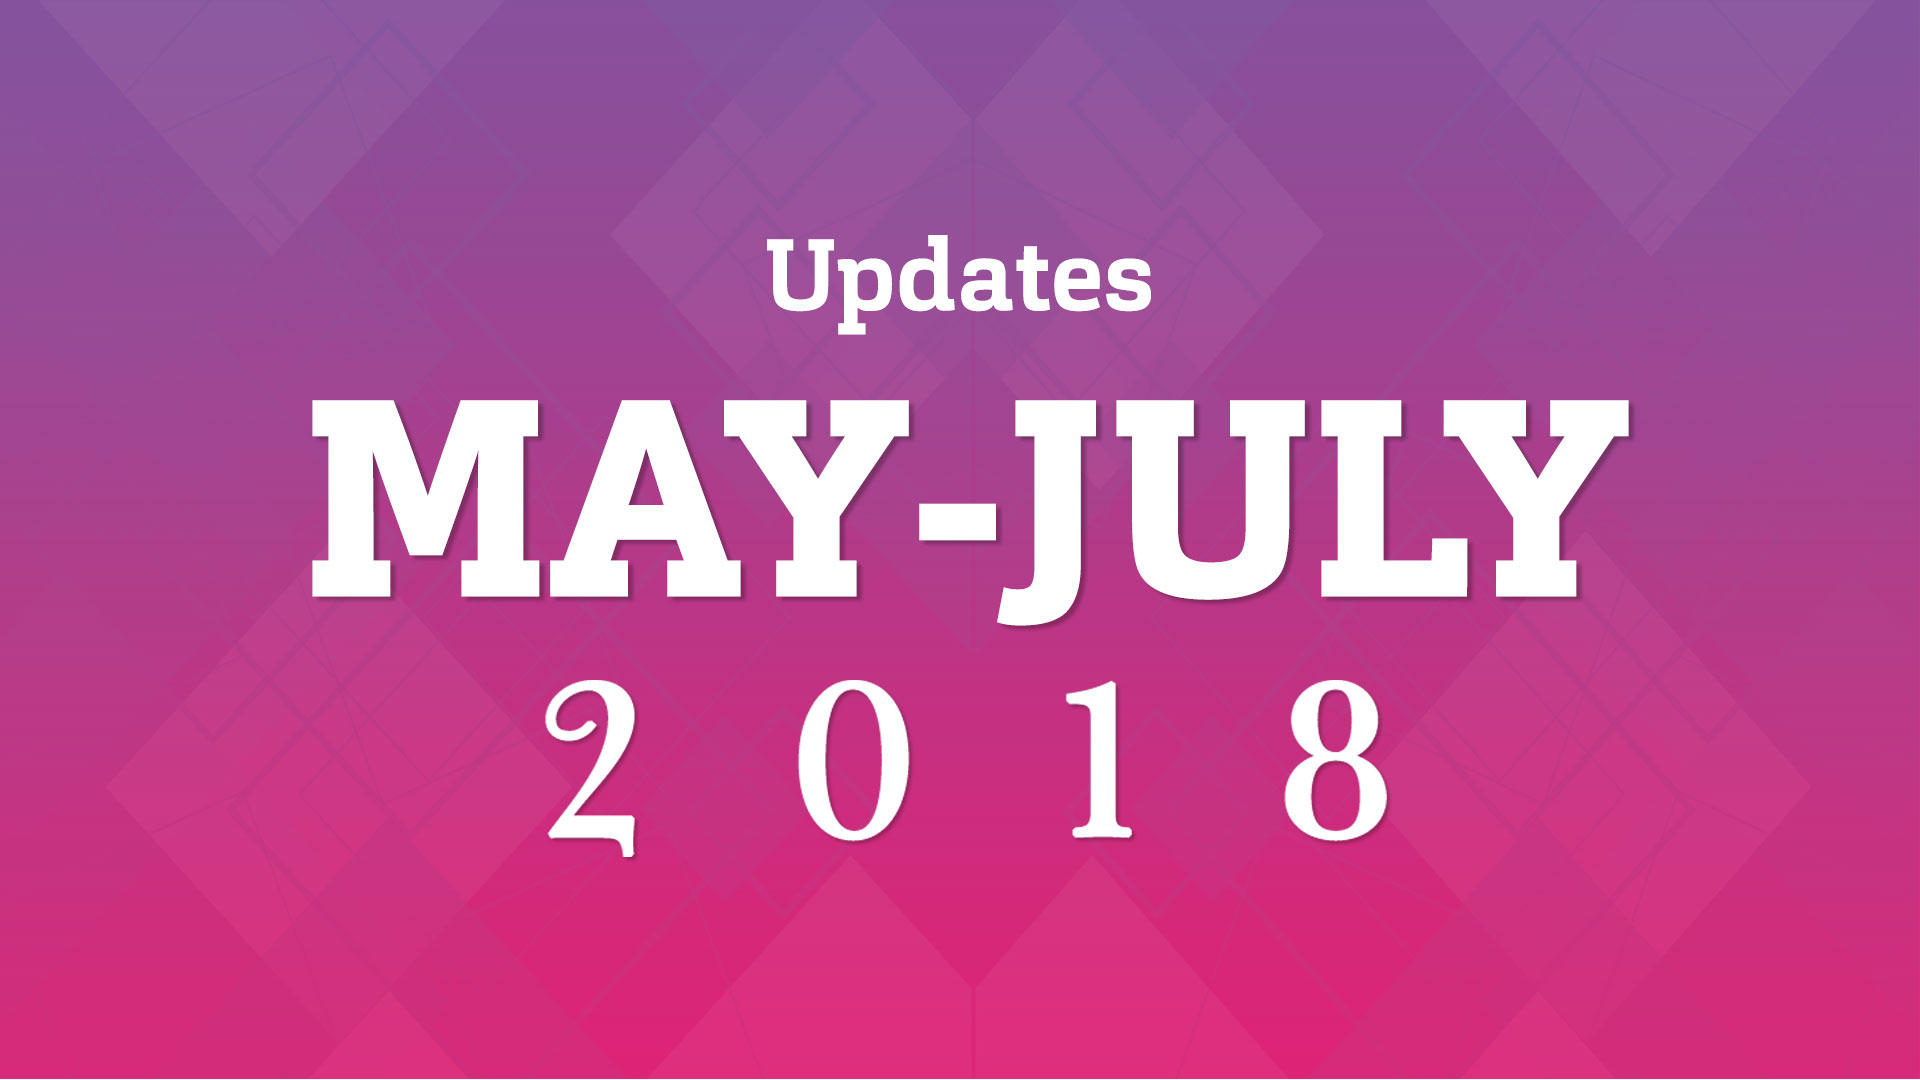 May-July 2018 updates